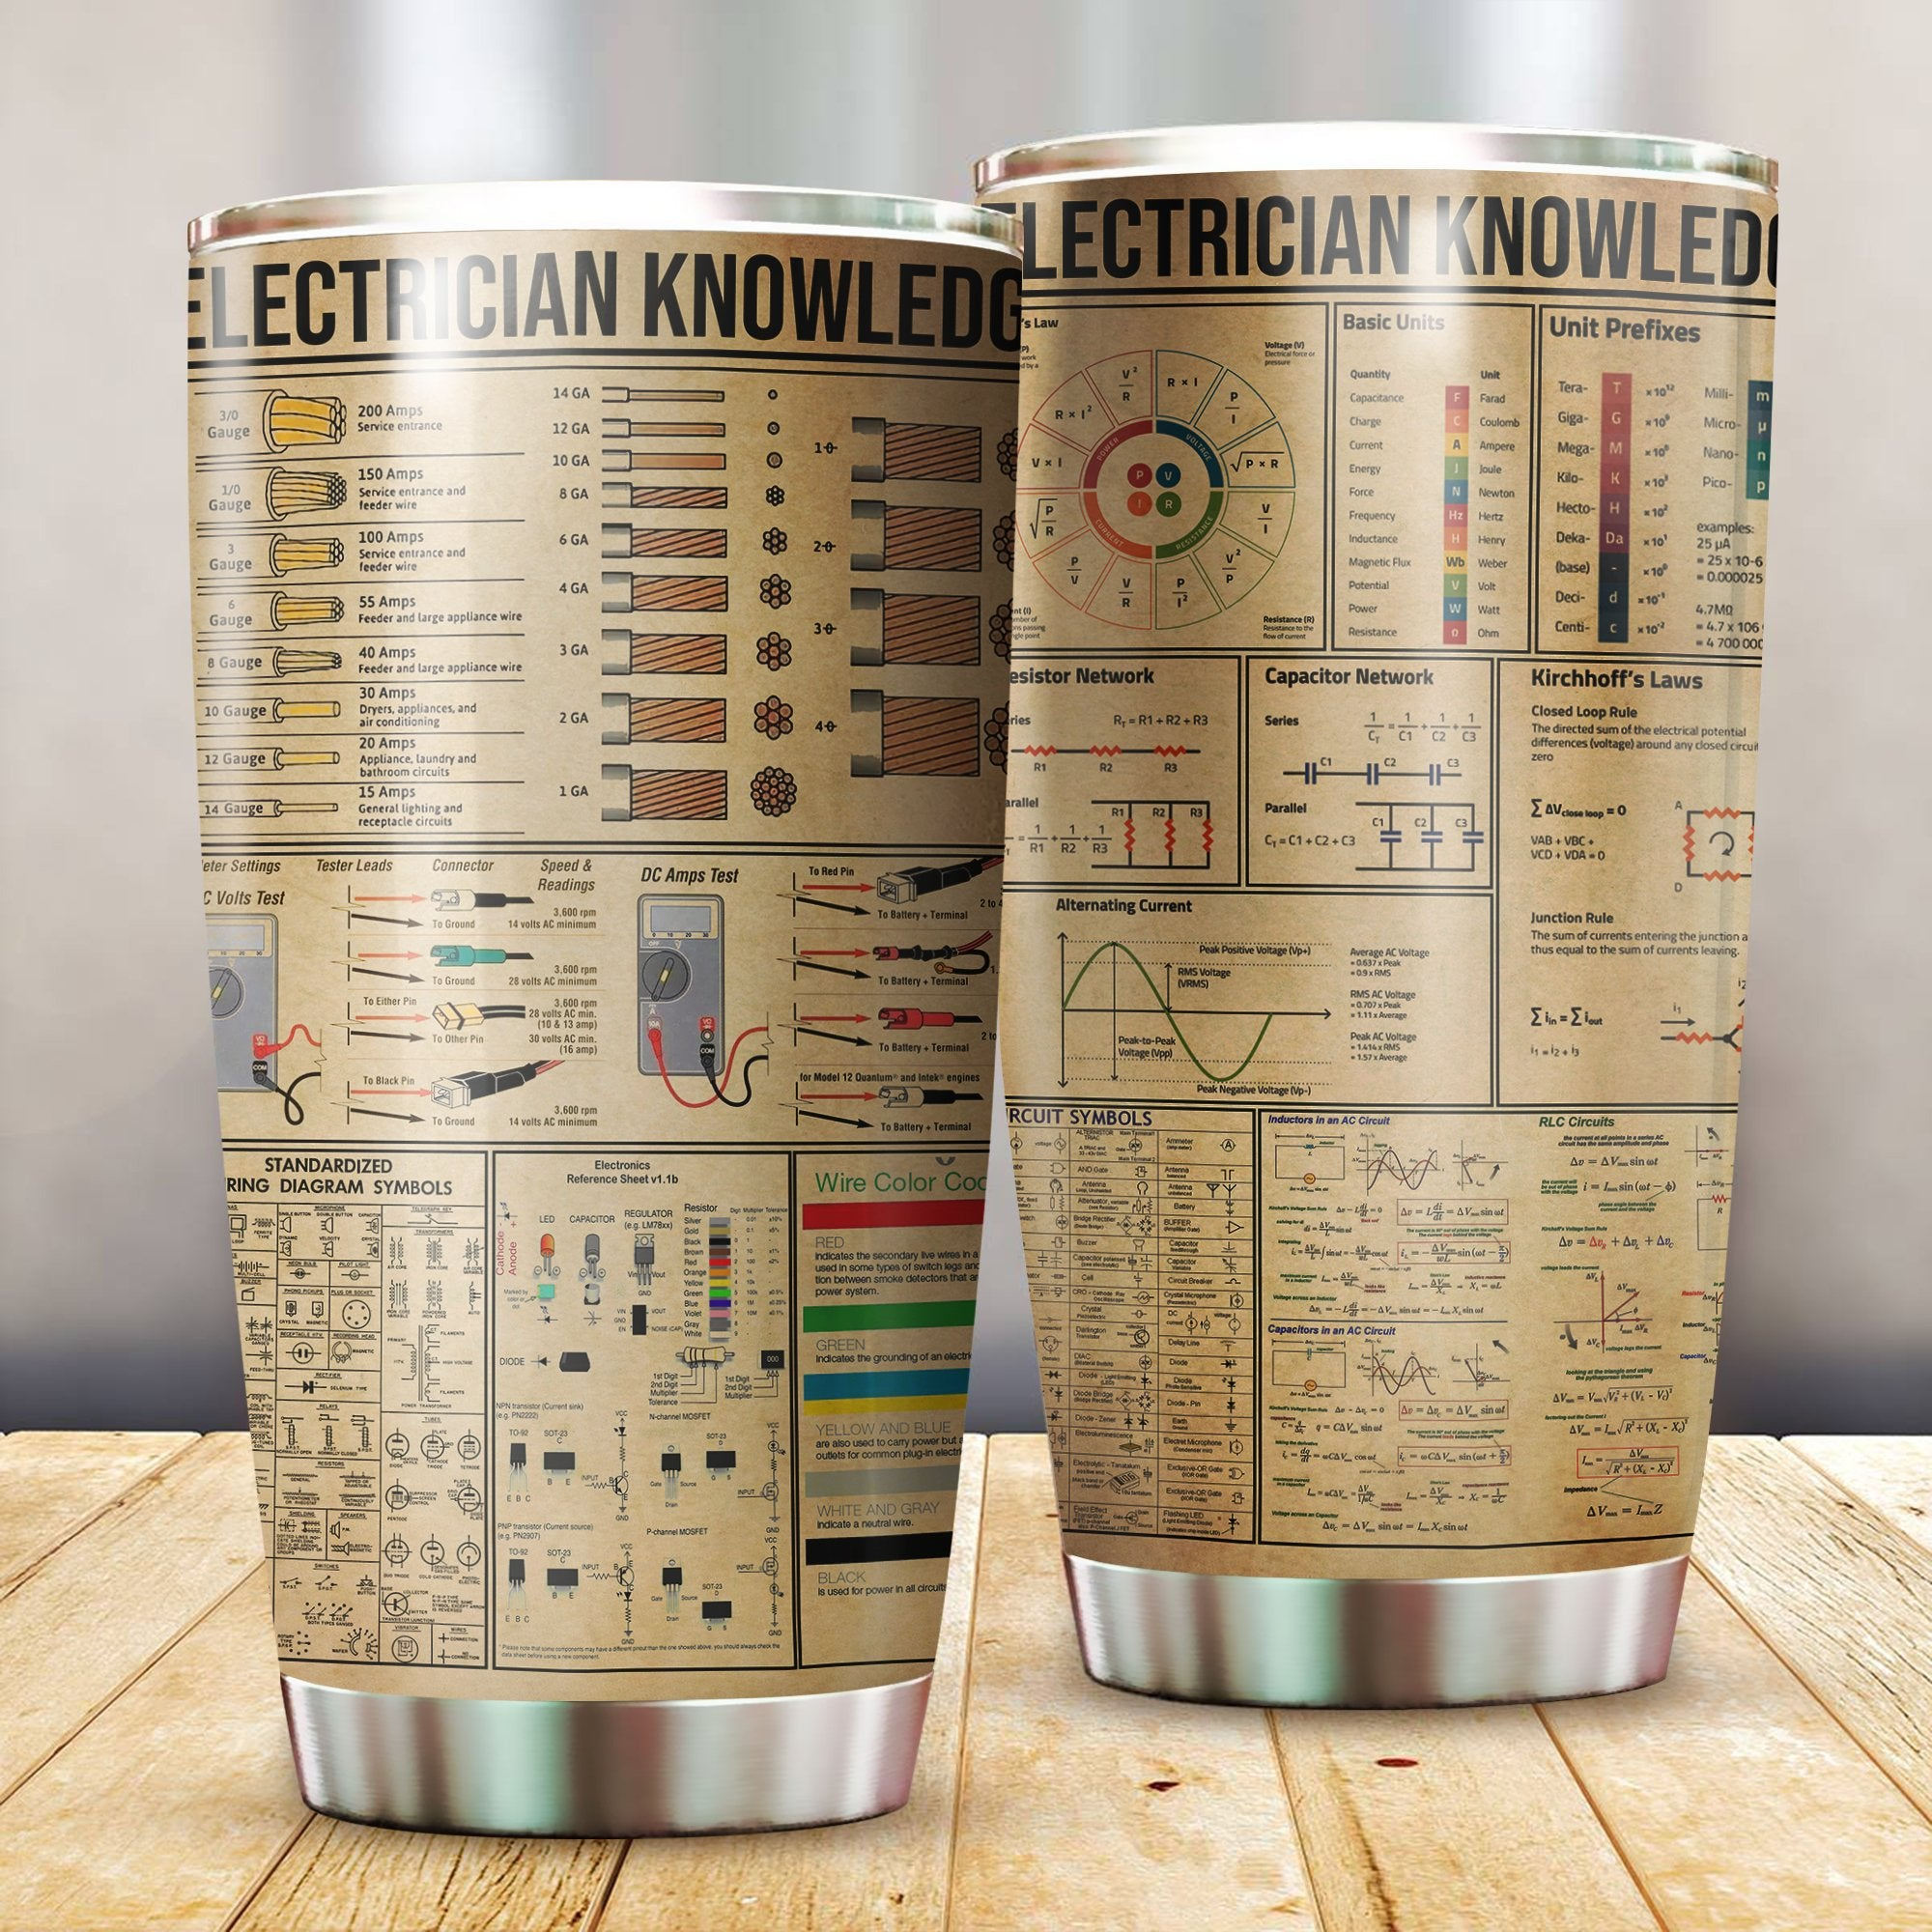 Electrician Knowledge Stainless Steel Tumbler 20 Oz Pi210301-Tumbler-NM-Vibe Cosy™